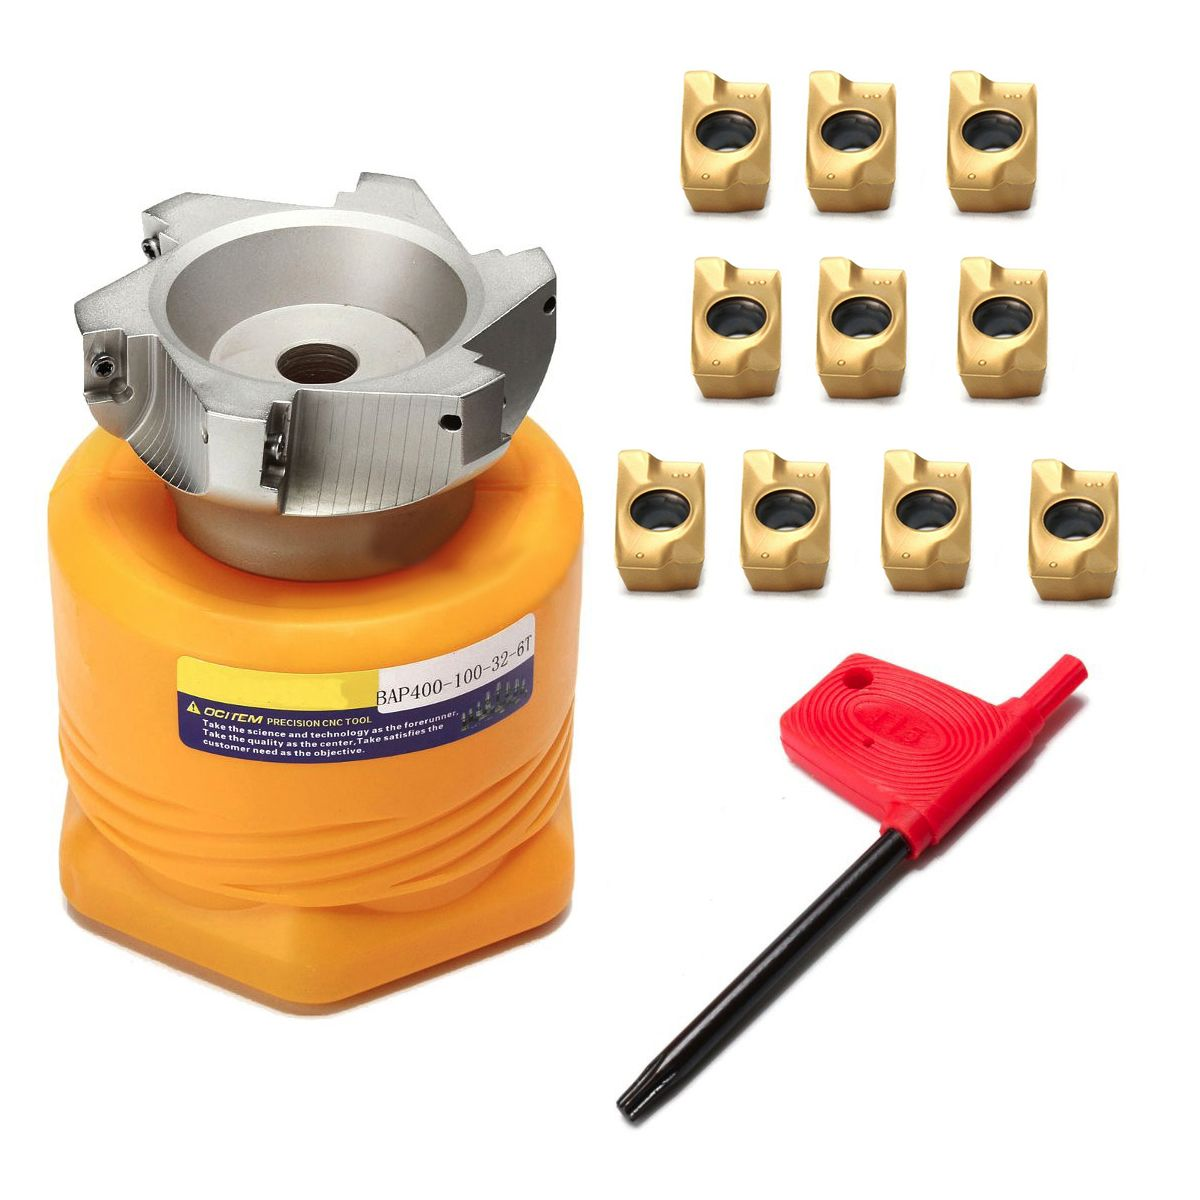 1pc BAP 400R-100-32-6F Face Milling Cutter Lathe Tool +10pcs Carbide Inserts with T5 Wrench For Metal Heavy Cutting